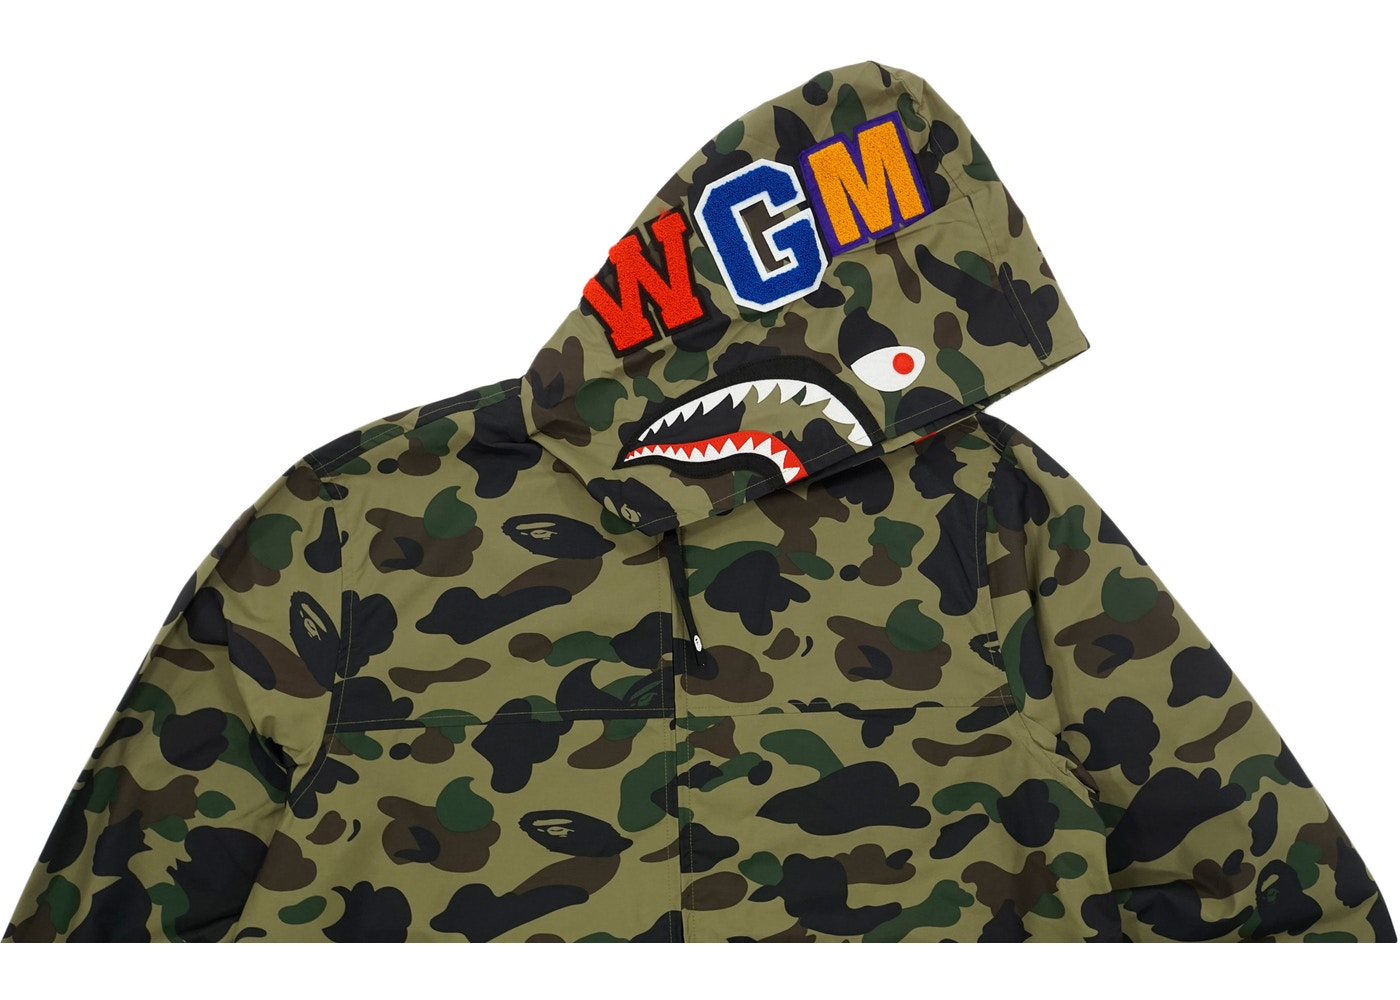 b6d9ba2c17c62 Streetwear - Bape Jackets - New Highest Bids